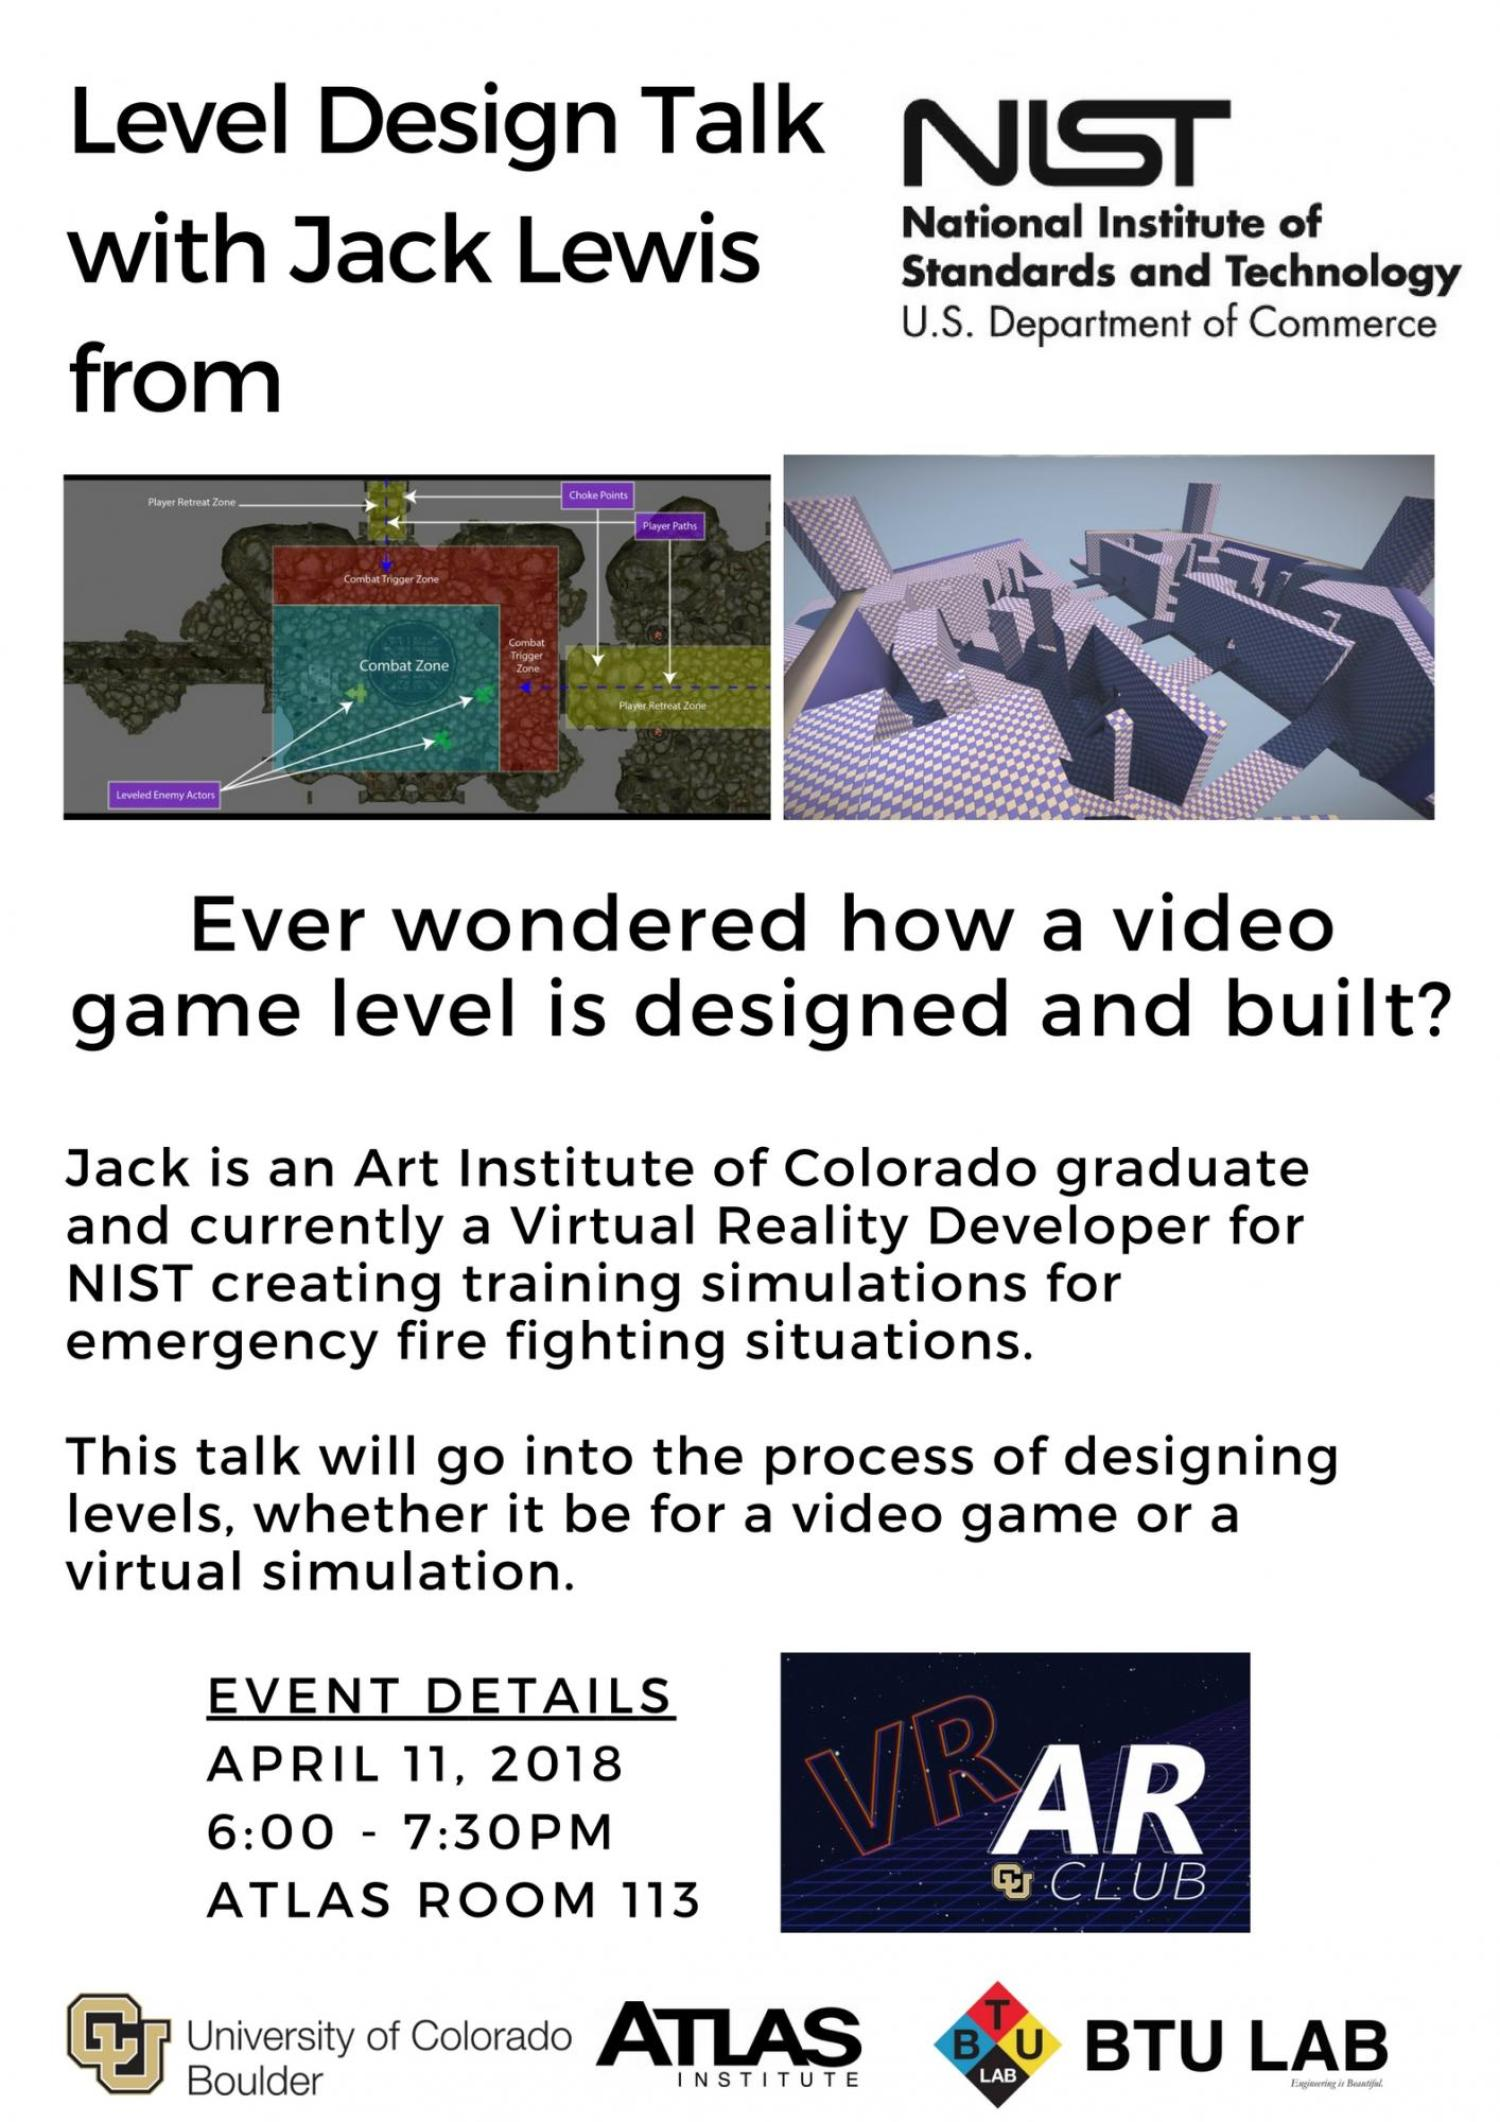 Level design with Jack Lewis from NIST